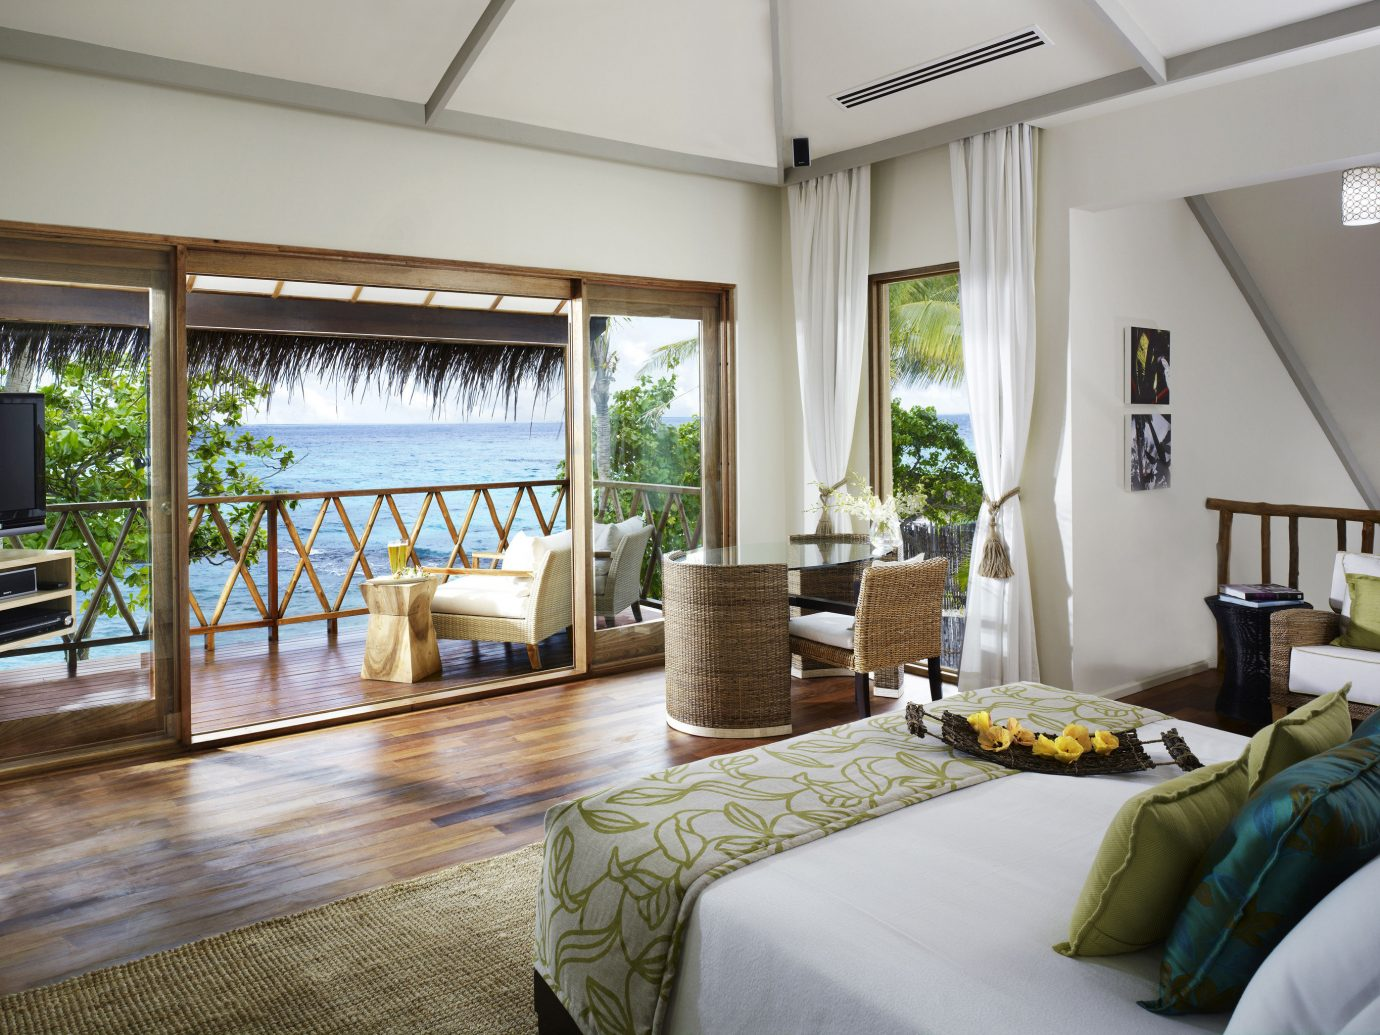 Bedroom at Taj Coral Reef Resort & Spa